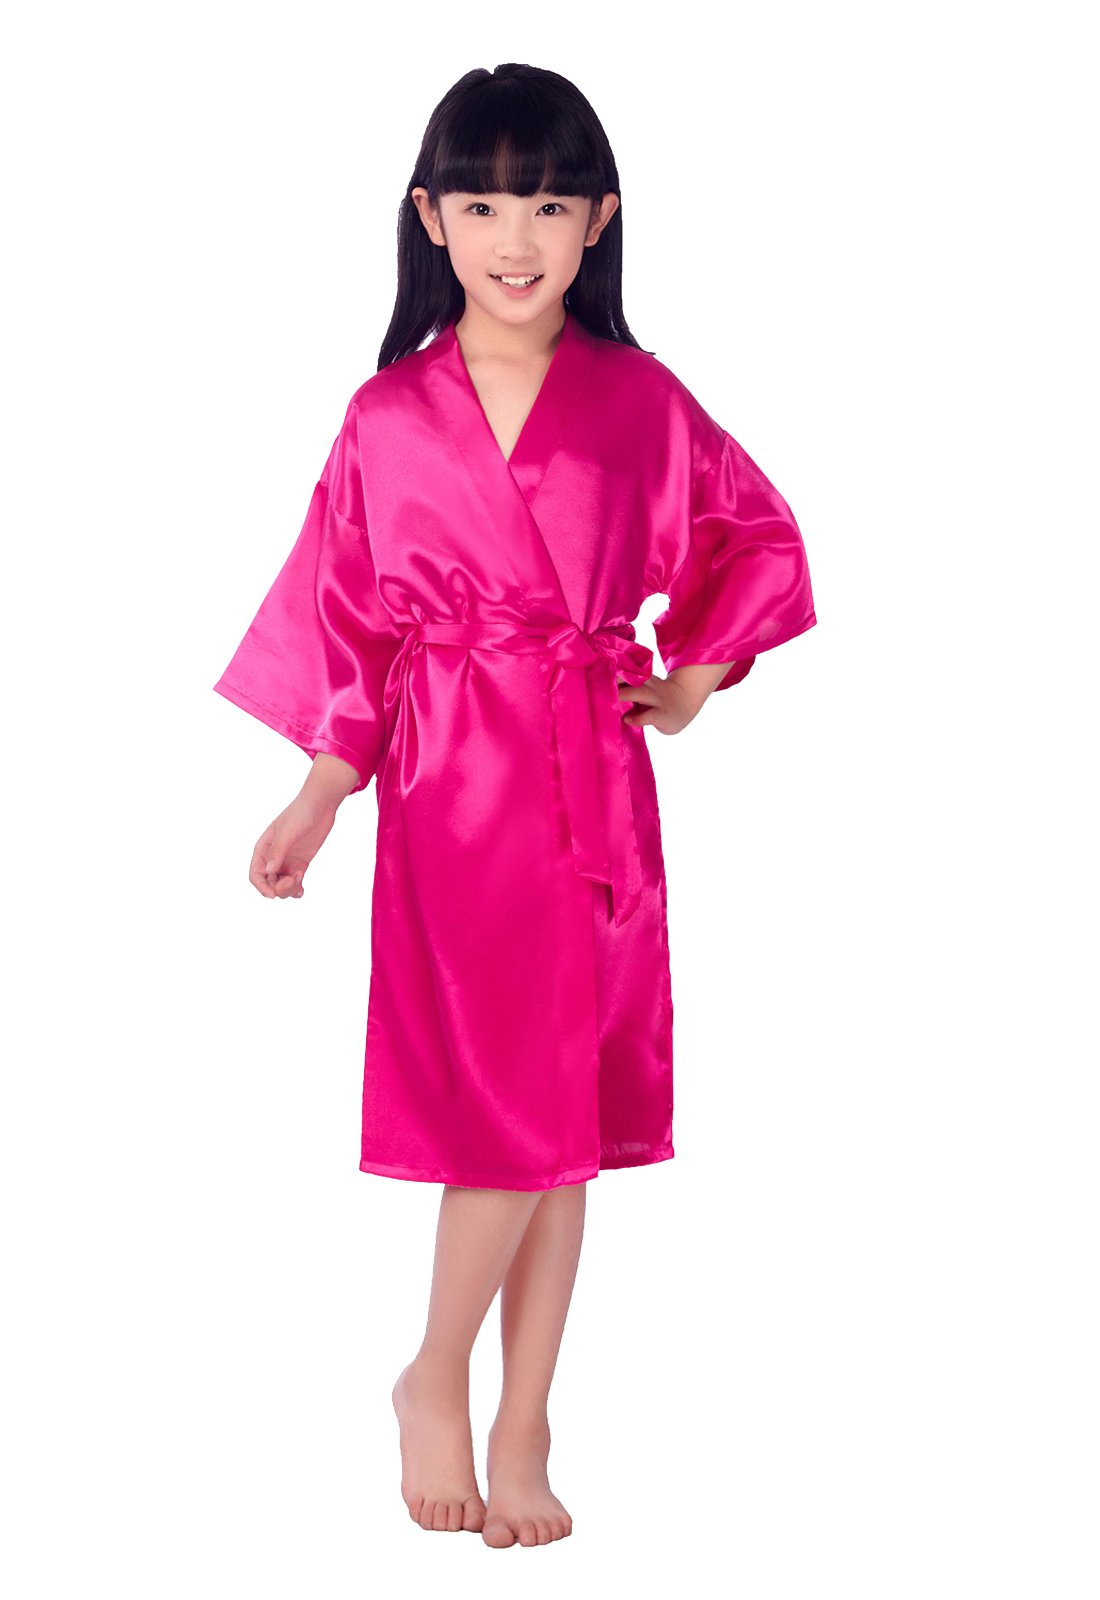 EPLAZA Girls Plain Satin Robe Children Dressing Gown Sleepwear Wedding Bridesmaid Bathrobe (10, Rose red)